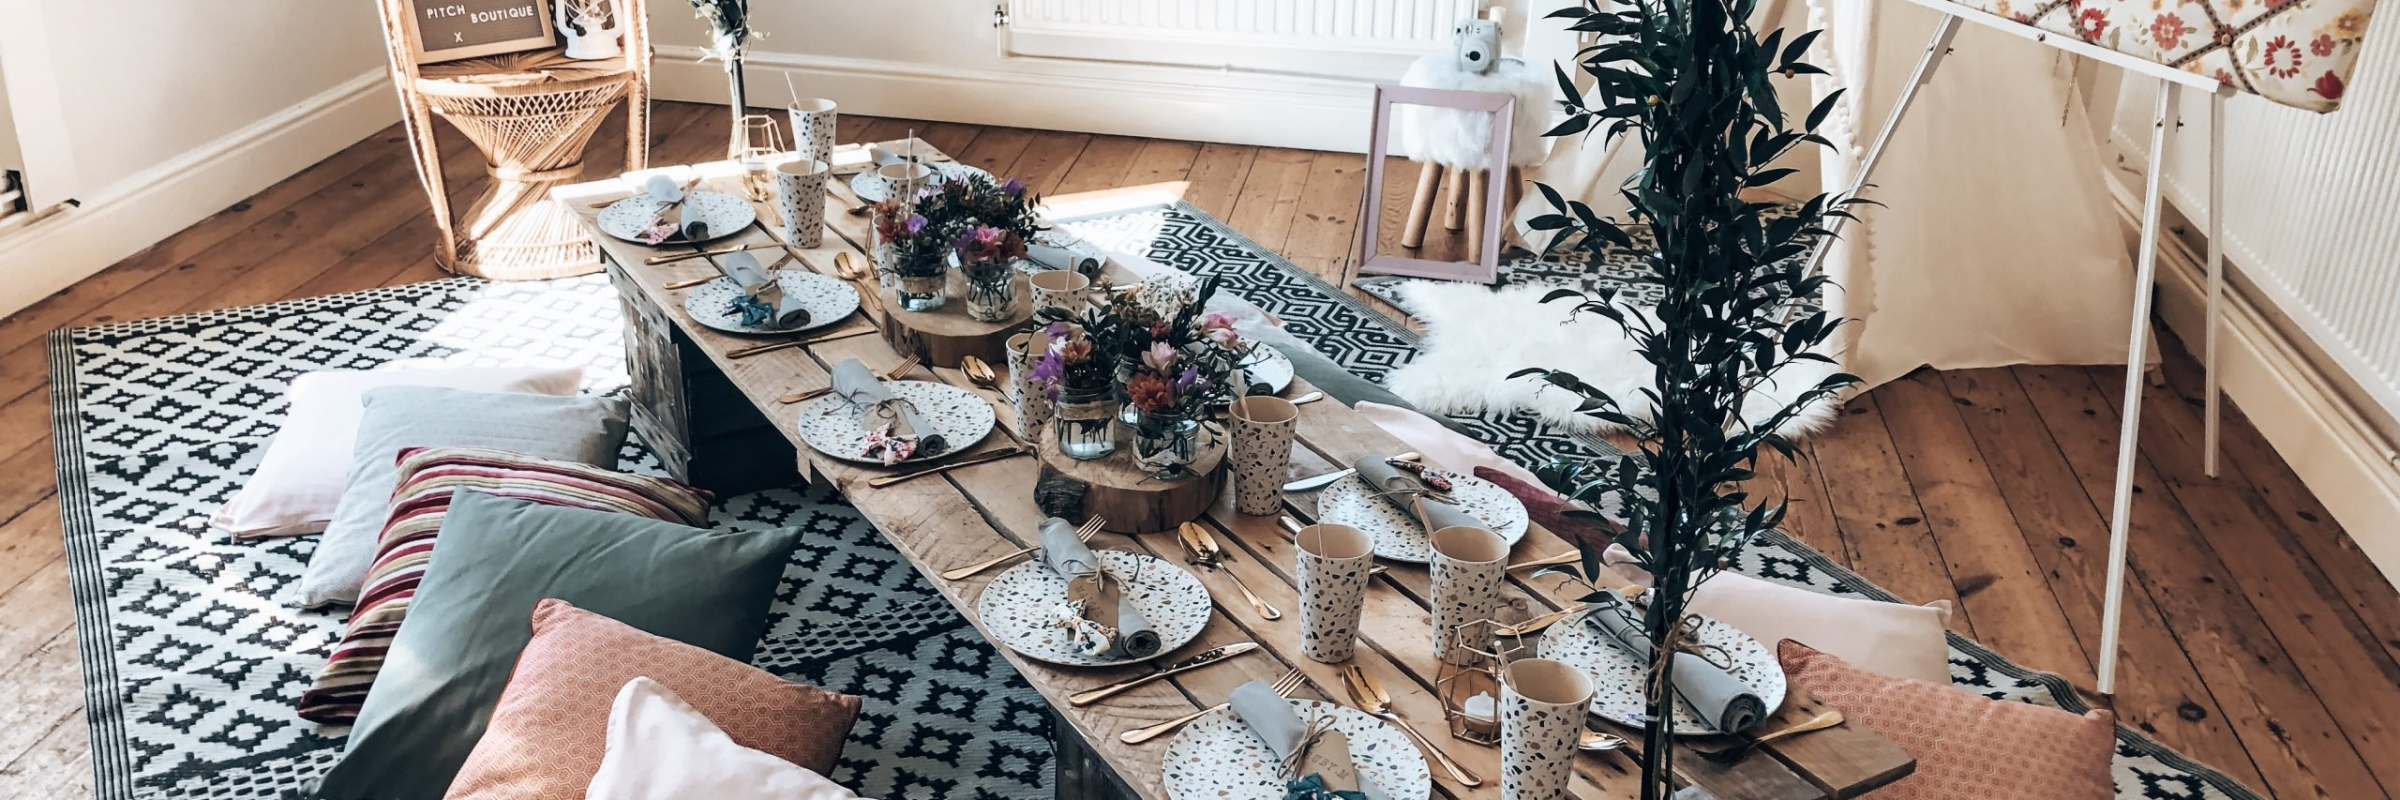 Whimsical picnic party inspiration from www.pitch-boutique.co.uk - featuring peacock chairs, English garden florals, fairy wings and flower crowns!